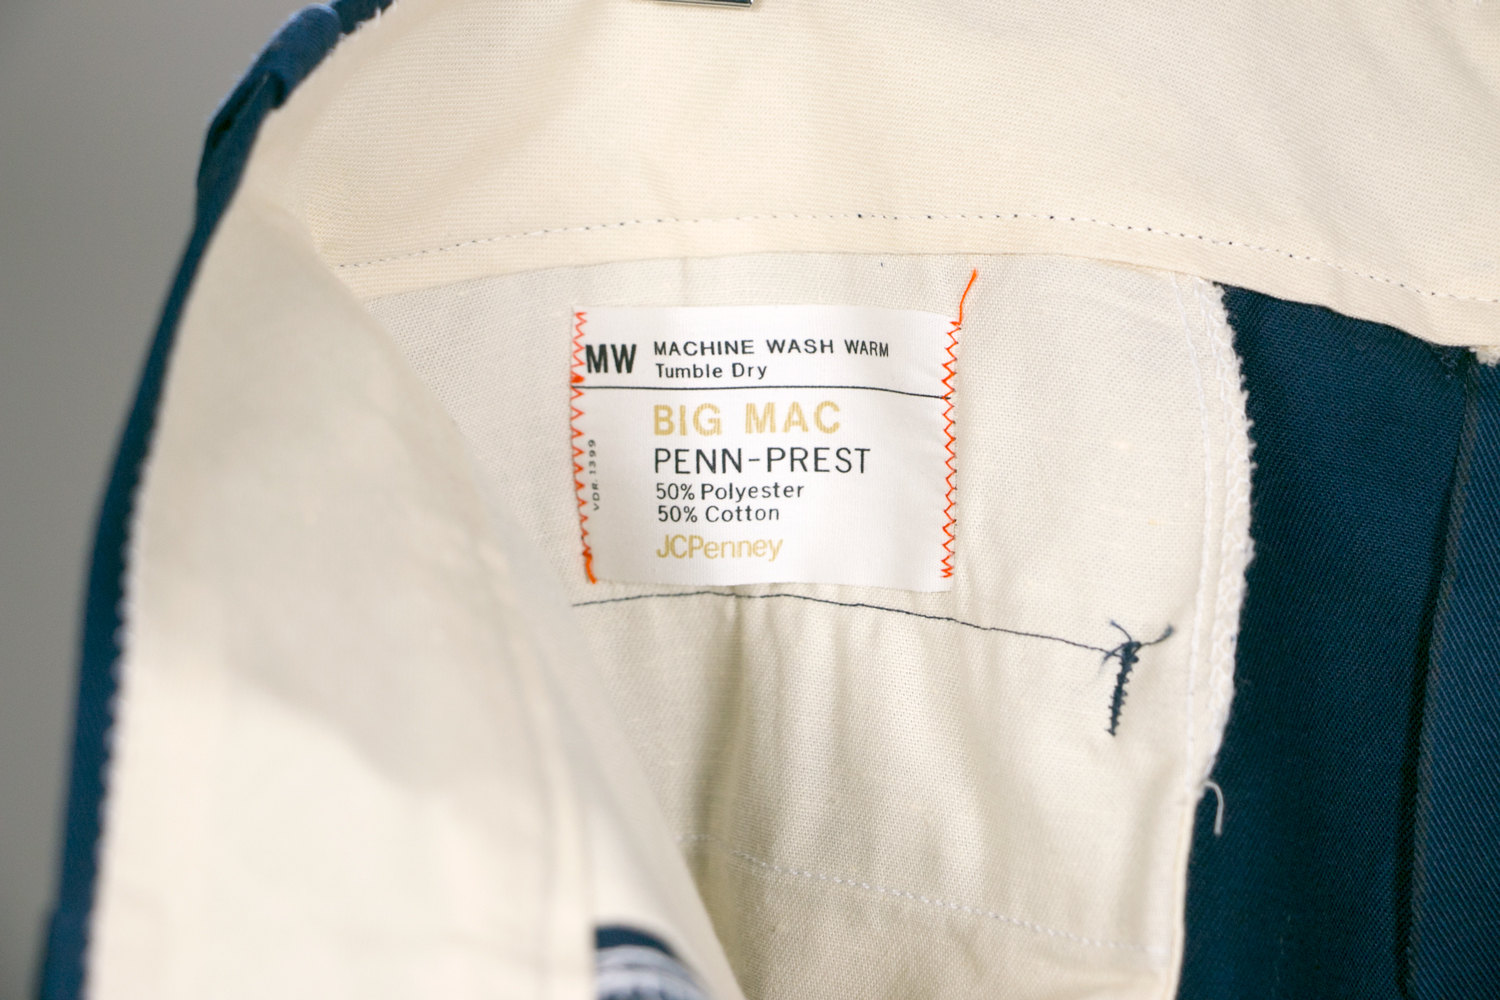 Vintage 1970's Men's Work Pants JCPenney, Big Mac Perm-Prest - Size W36 L28 - Like Dead Stock! - Retro, Hipster,